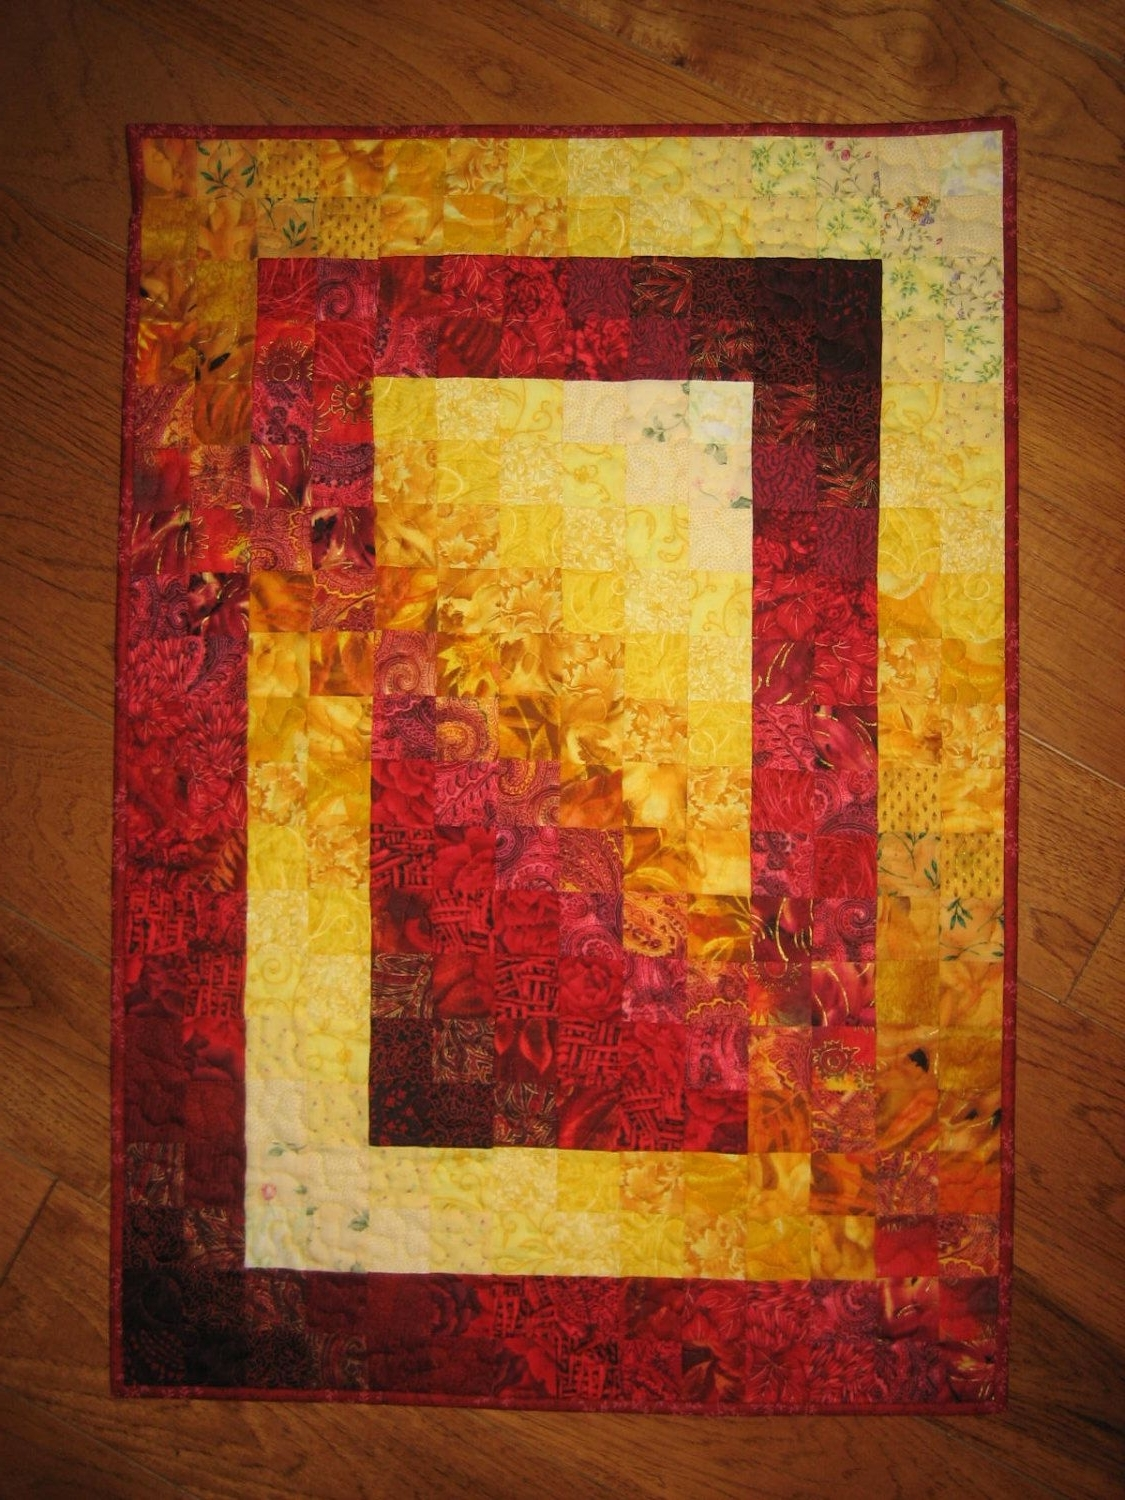 Preferred Art Quilt, Fire Red Yellow Orange Fabric Wall Hanging Abstract Intended For Fabric Applique Wall Art (View 13 of 15)